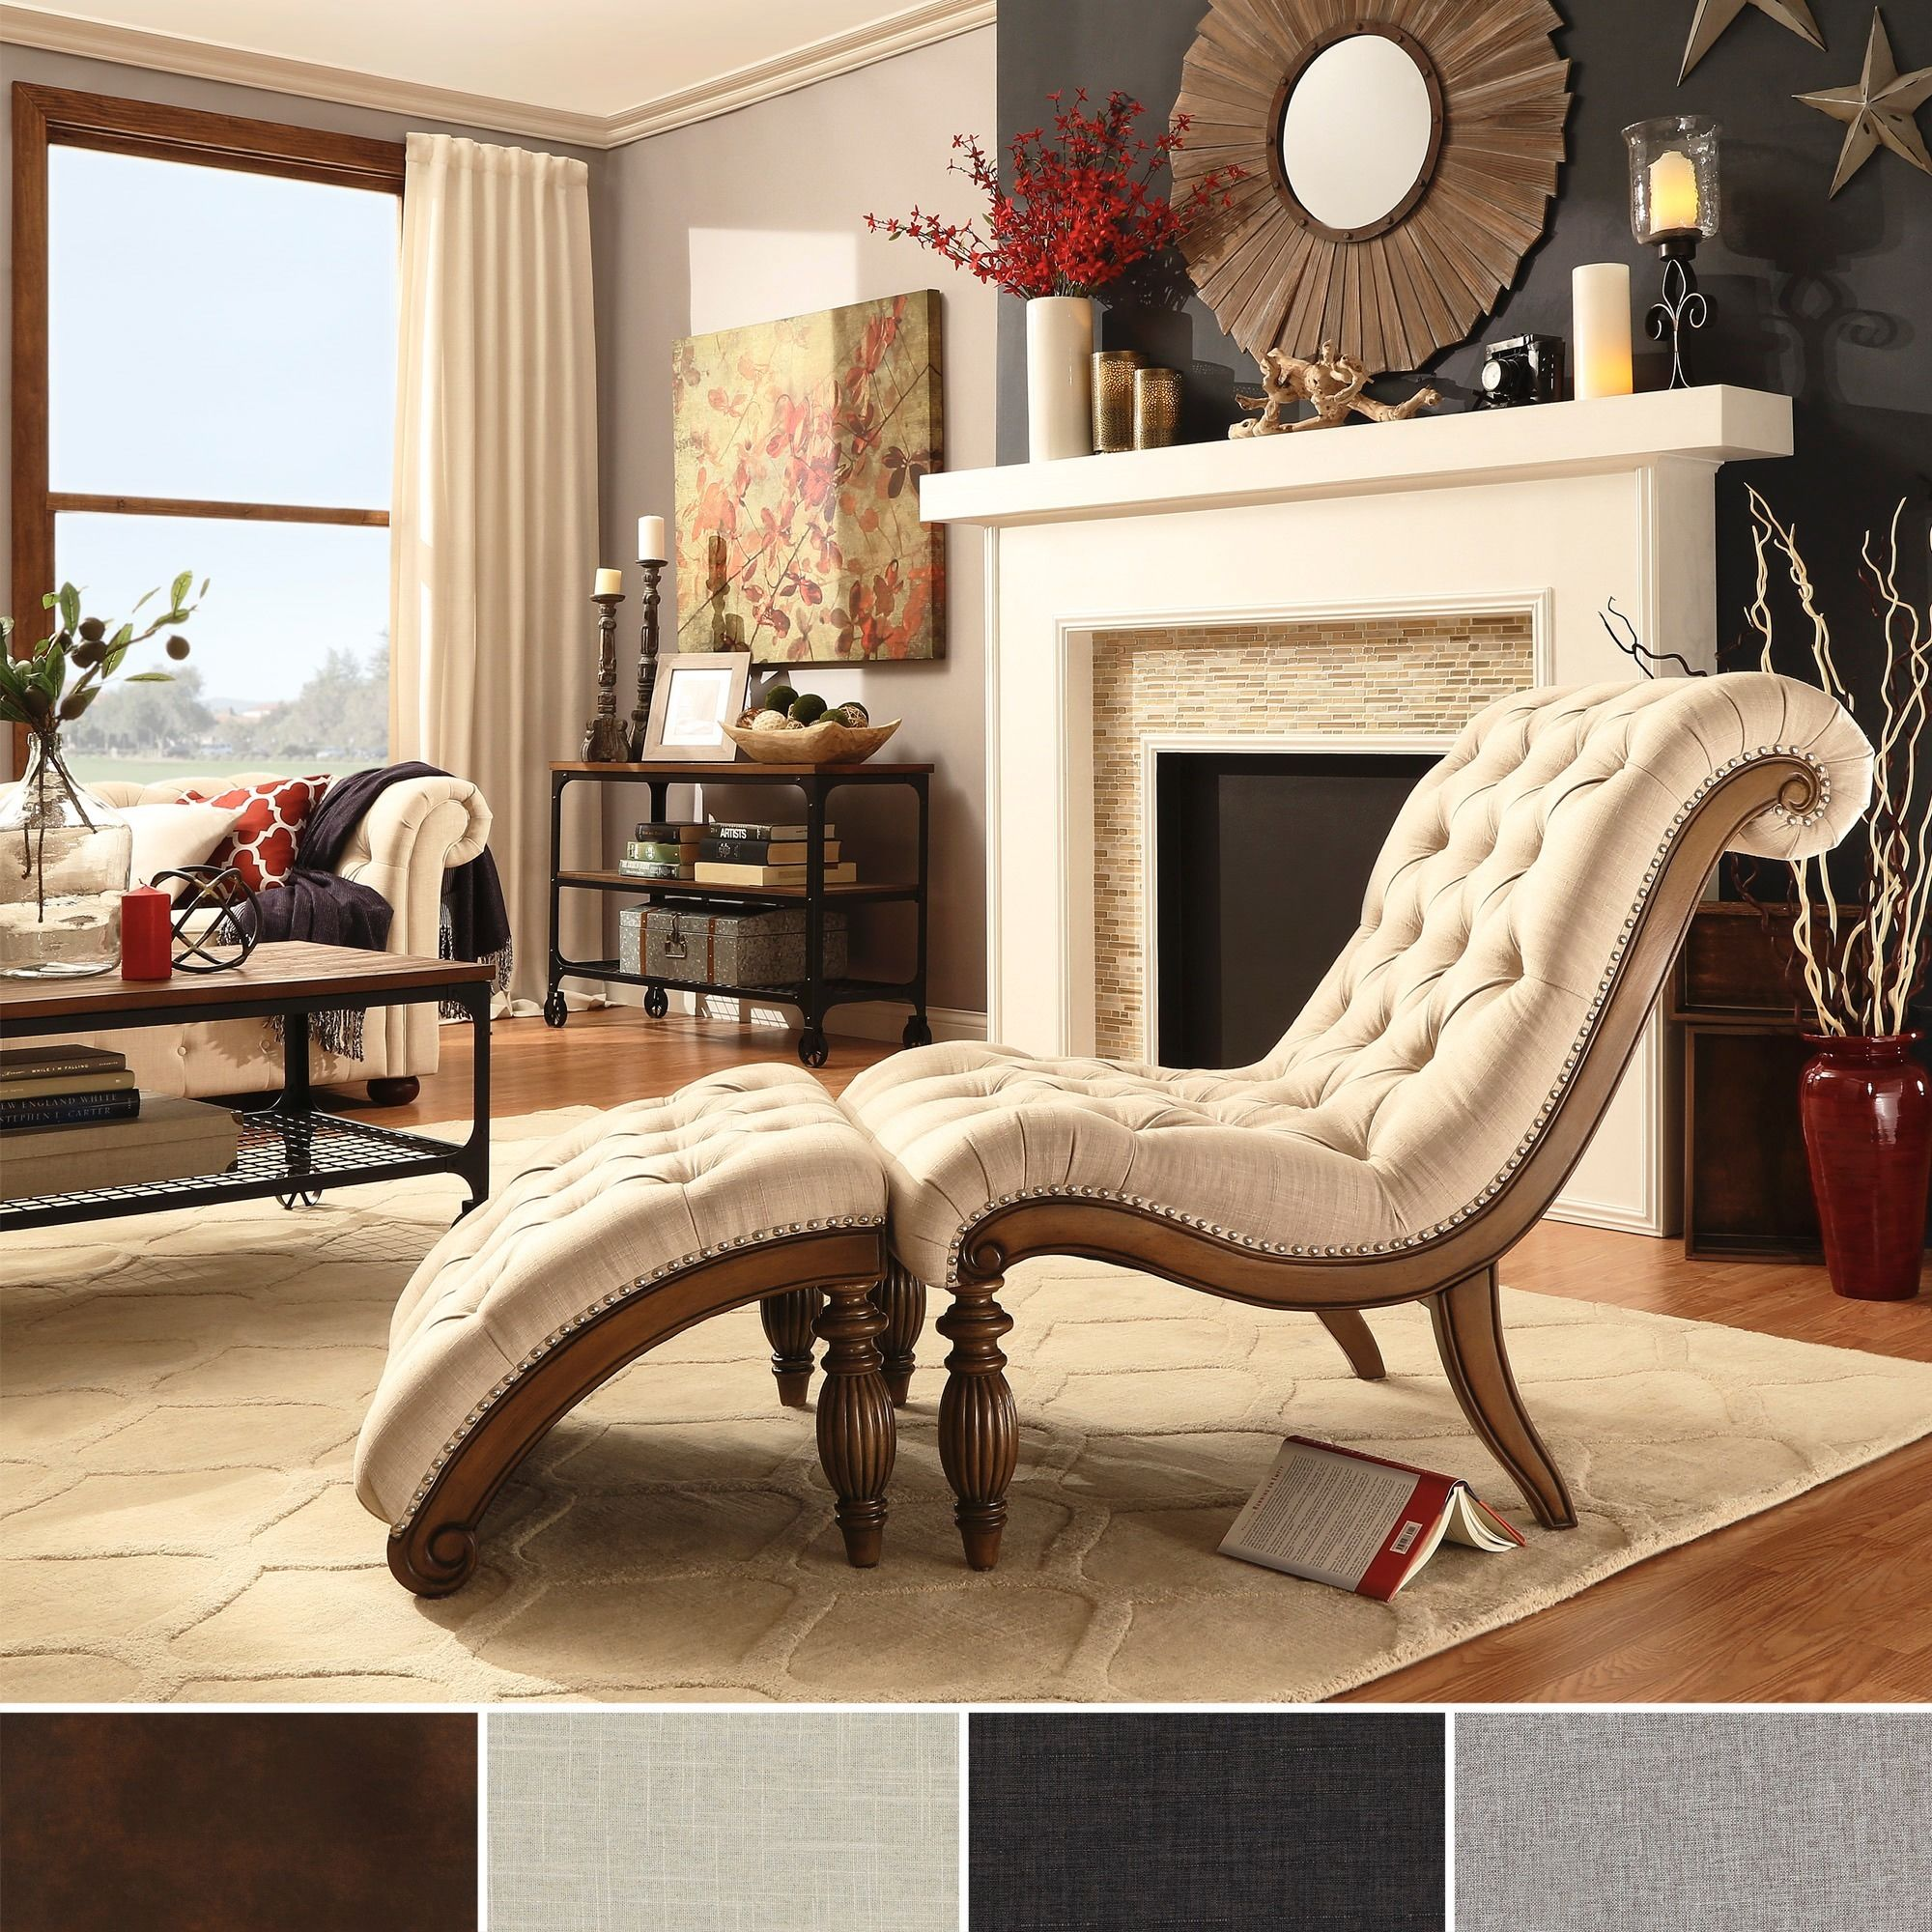 Accent Chairs, Chaise Lounges Living Room Chairs : Create An Inviting  Atmosphere With New Living Room Chairs. Amazing Ideas